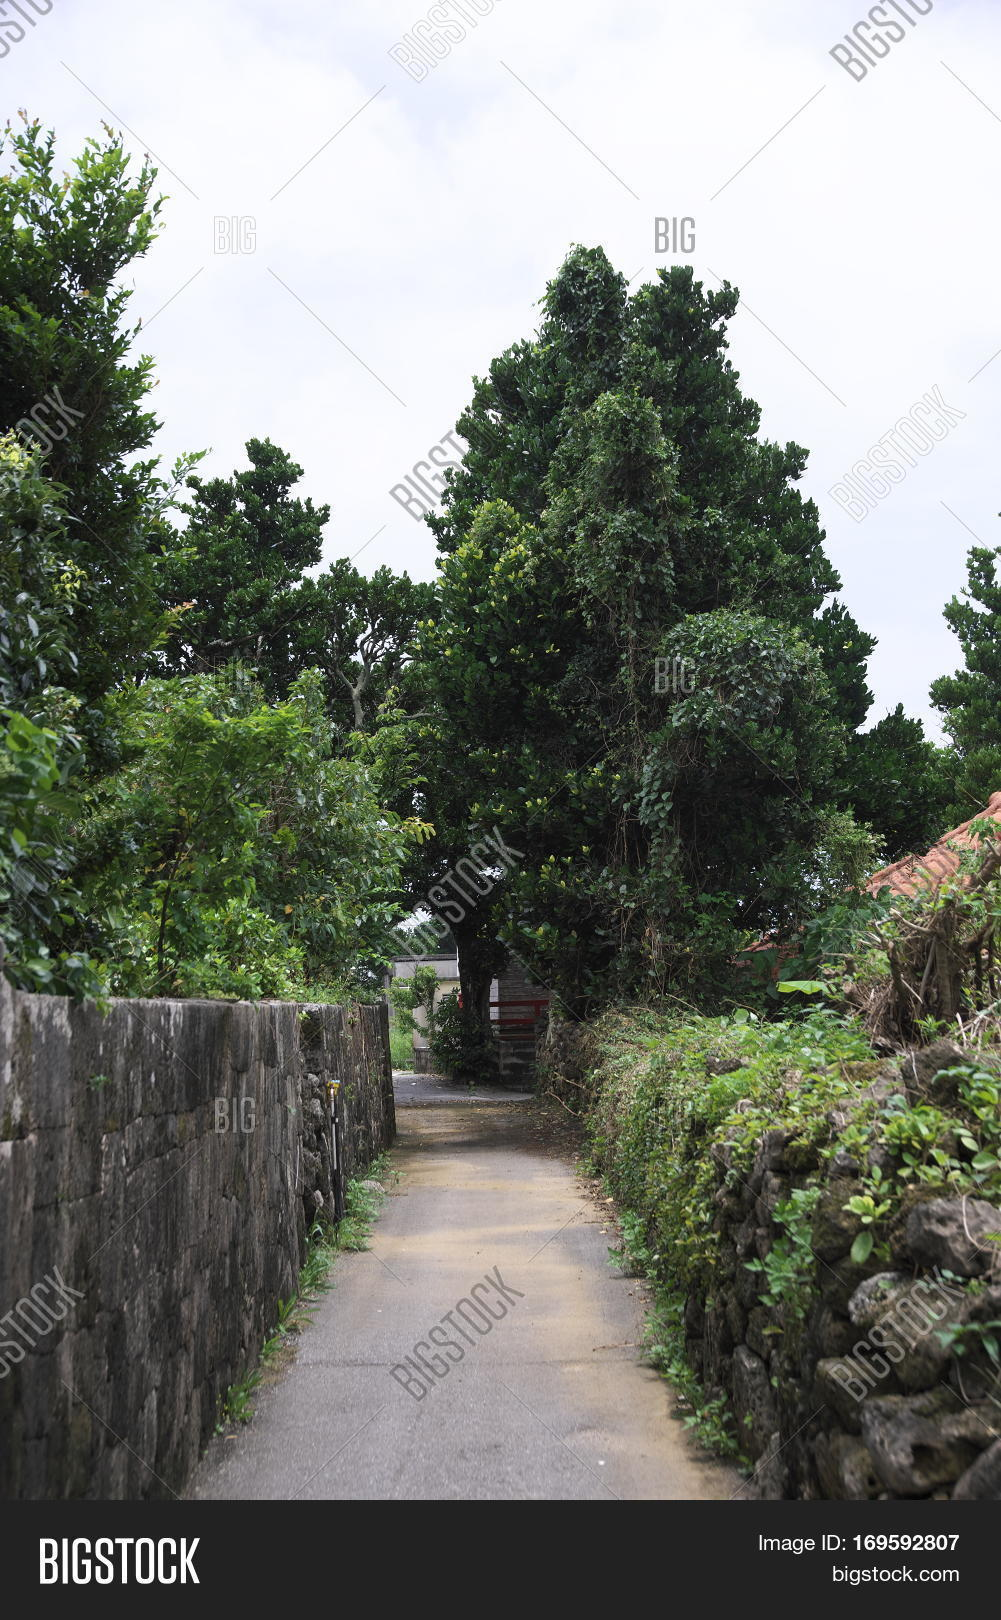 Road of residential area not paved on remote island of Okinawa